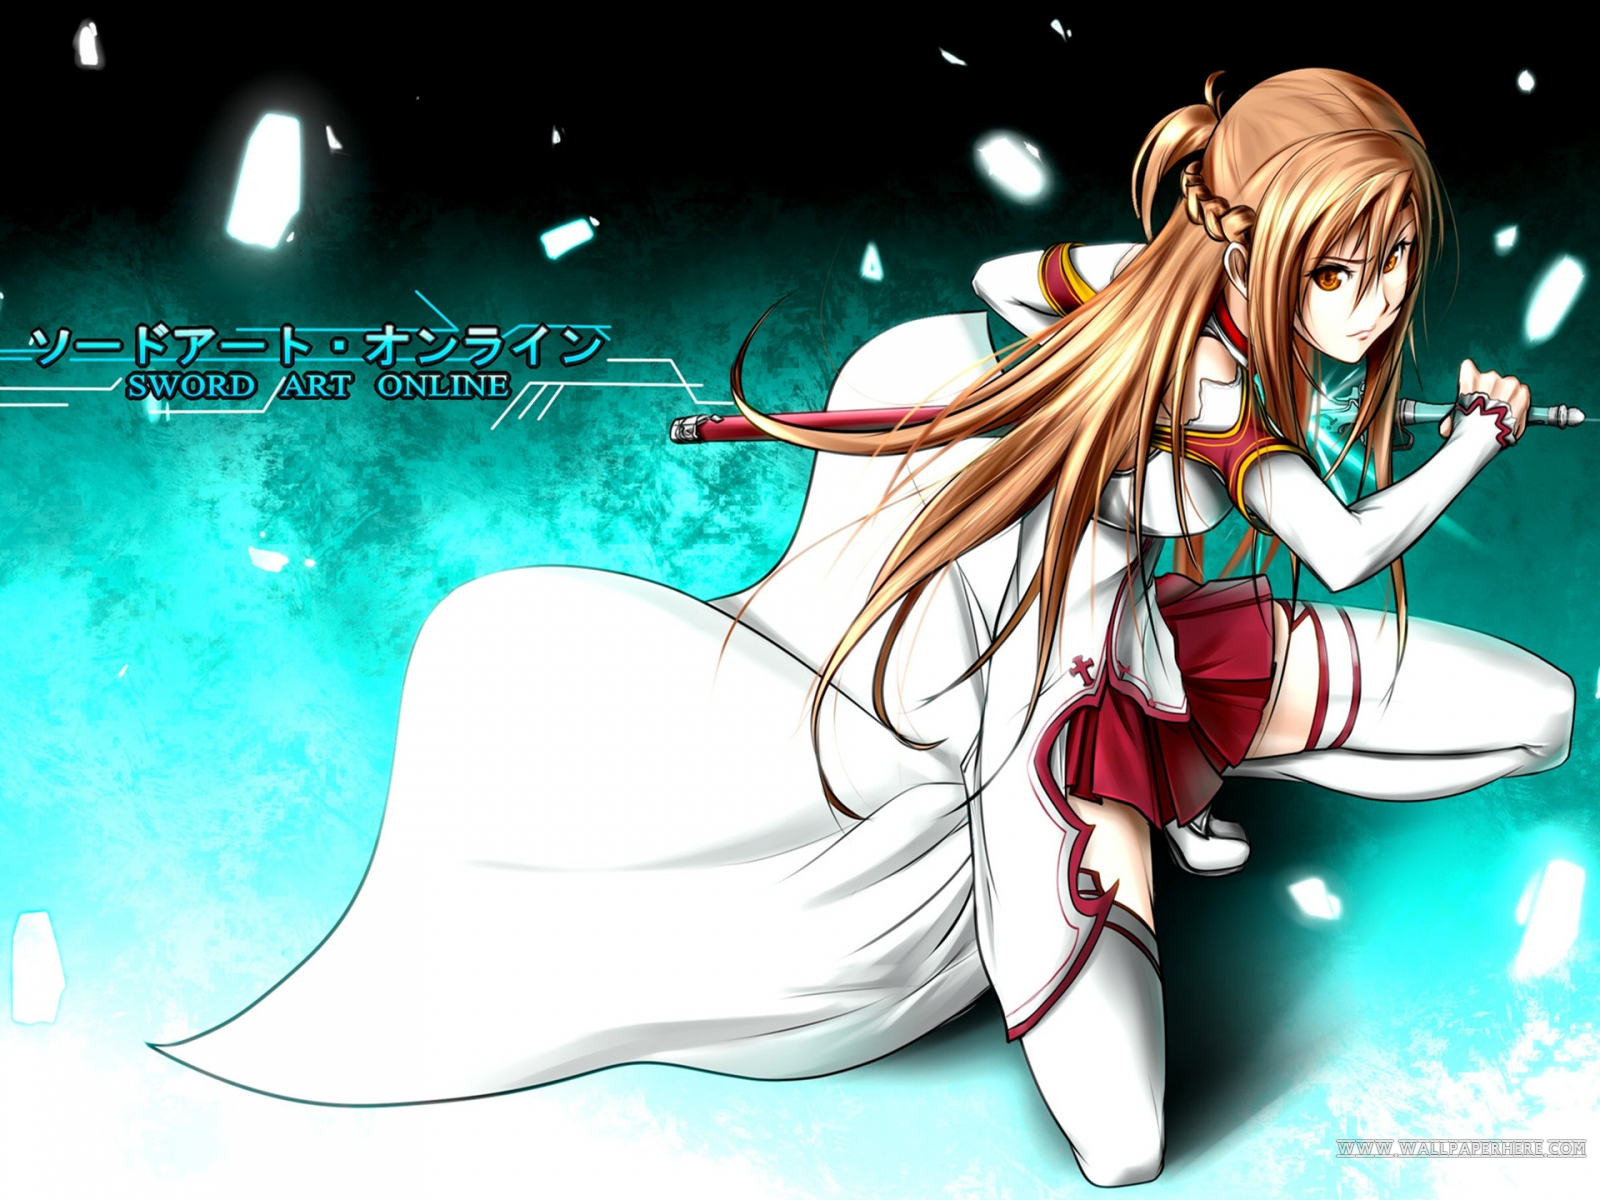 Asuna 16 Wallpapers | Your daily Anime Wallpaper and Fan Art